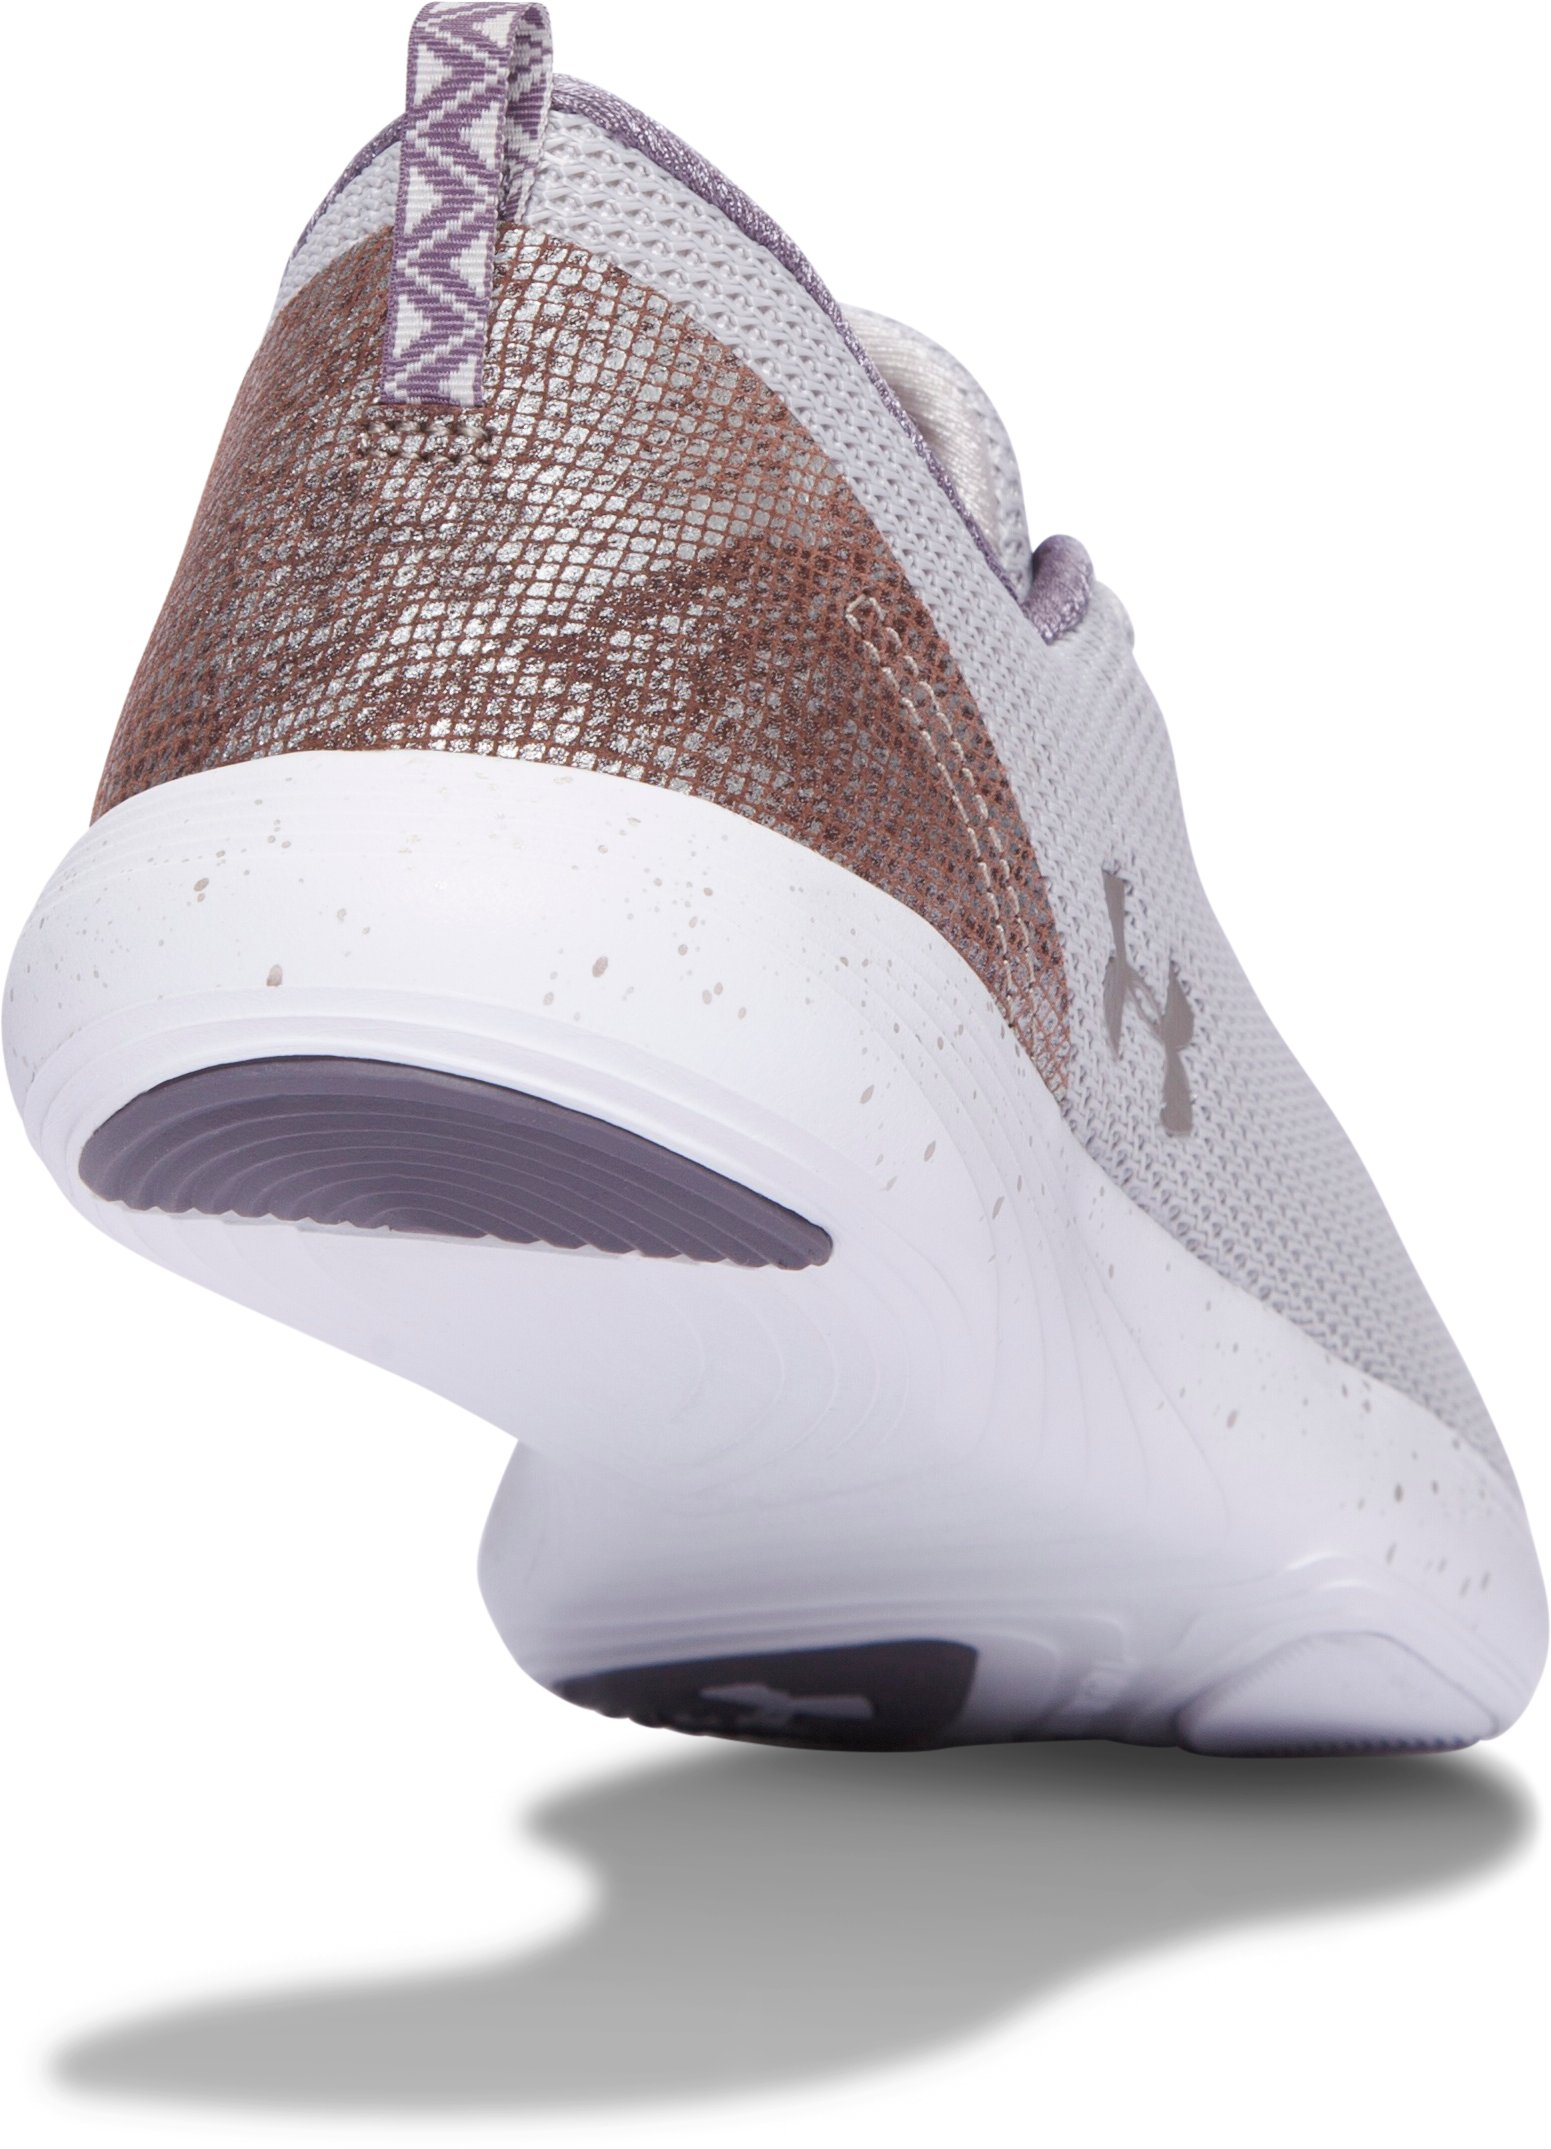 Women's UA Street Precision Sport Low Metallic Lifestyle Shoes, GRAY MATTER,